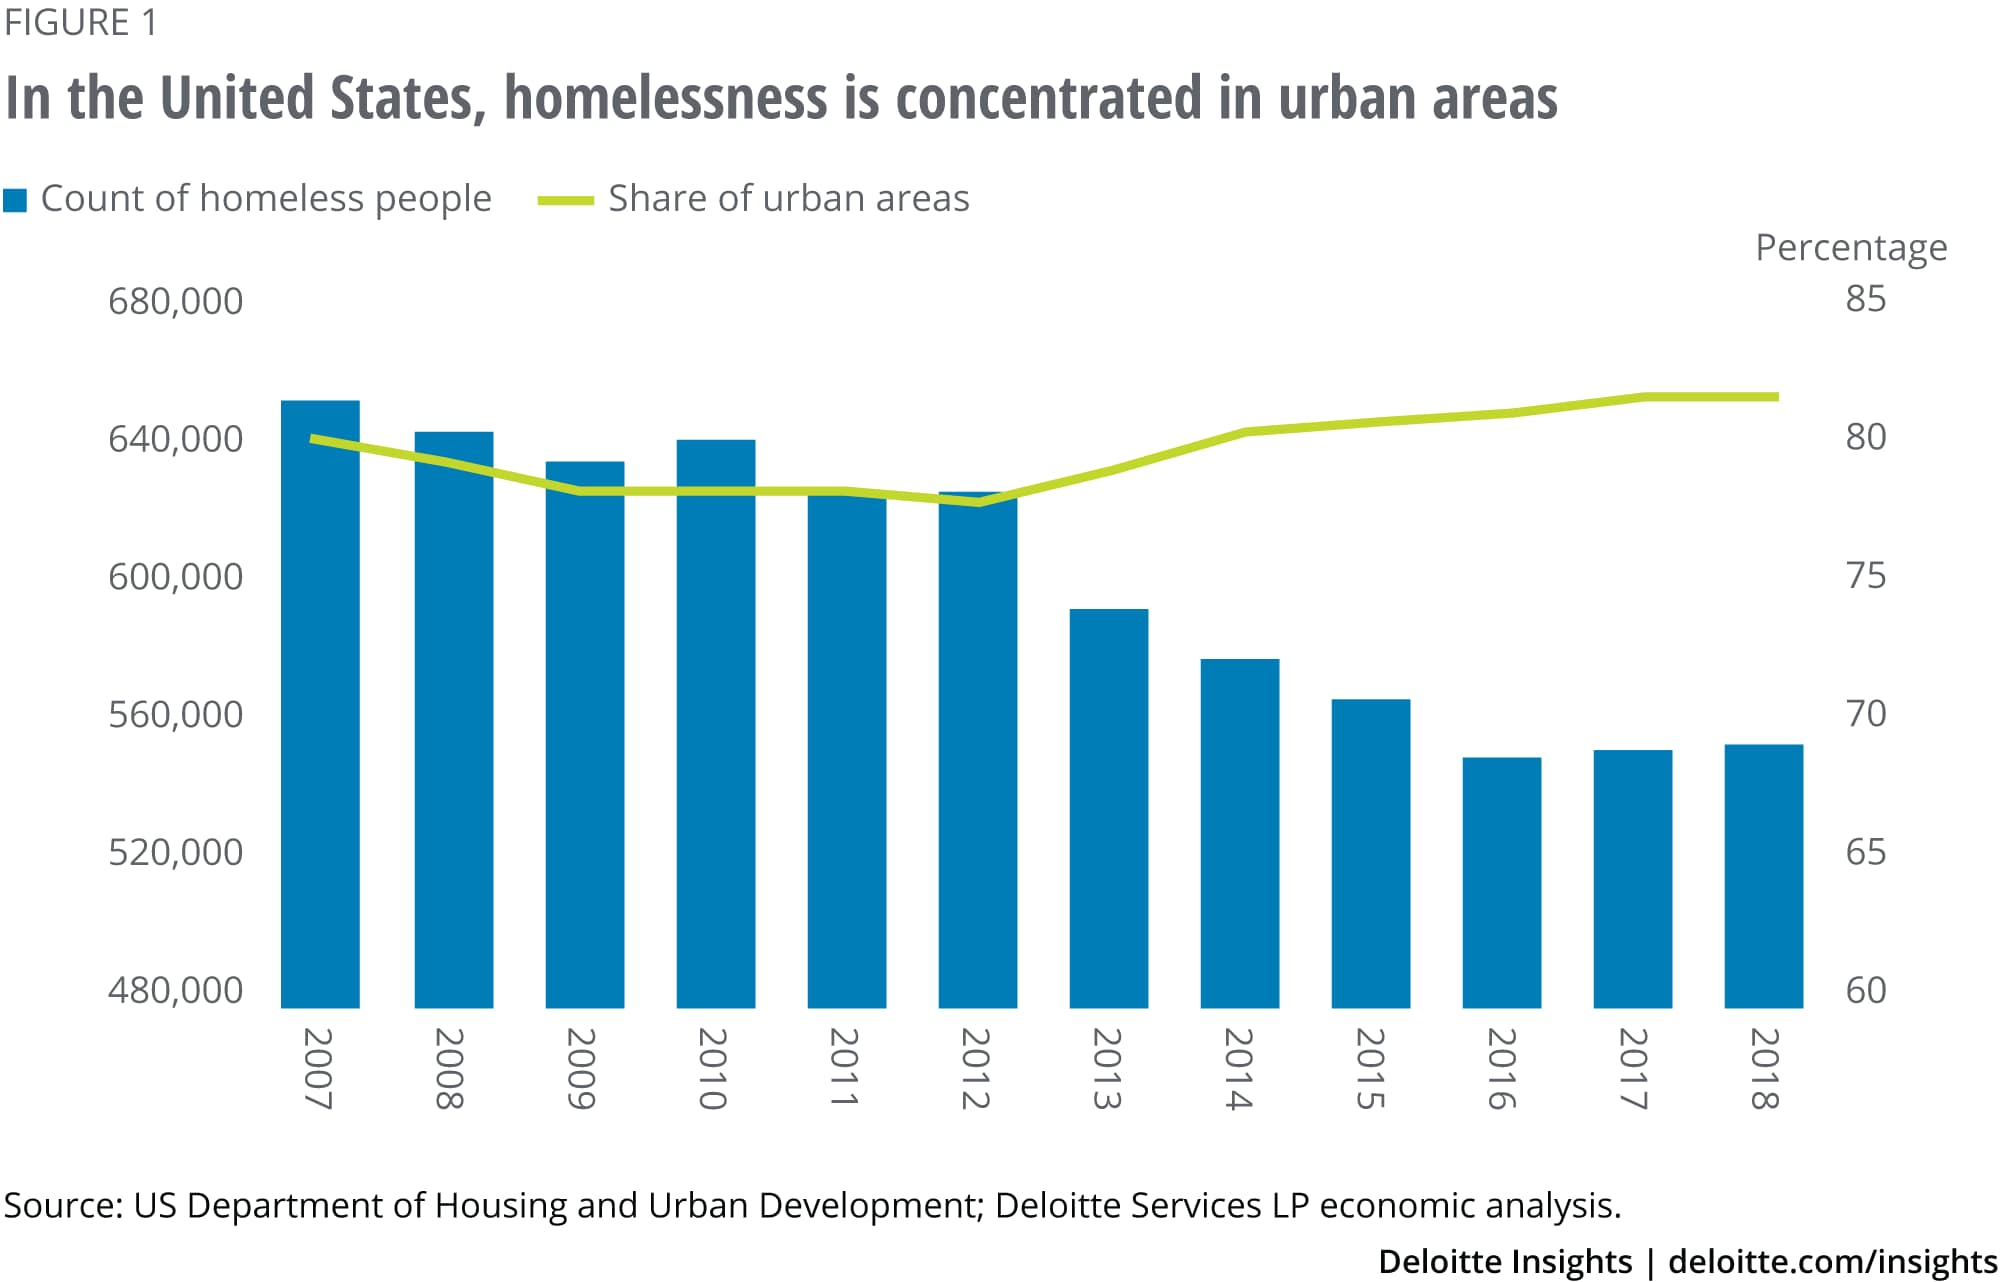 In the United States, homelessness is concentrated in urban areas